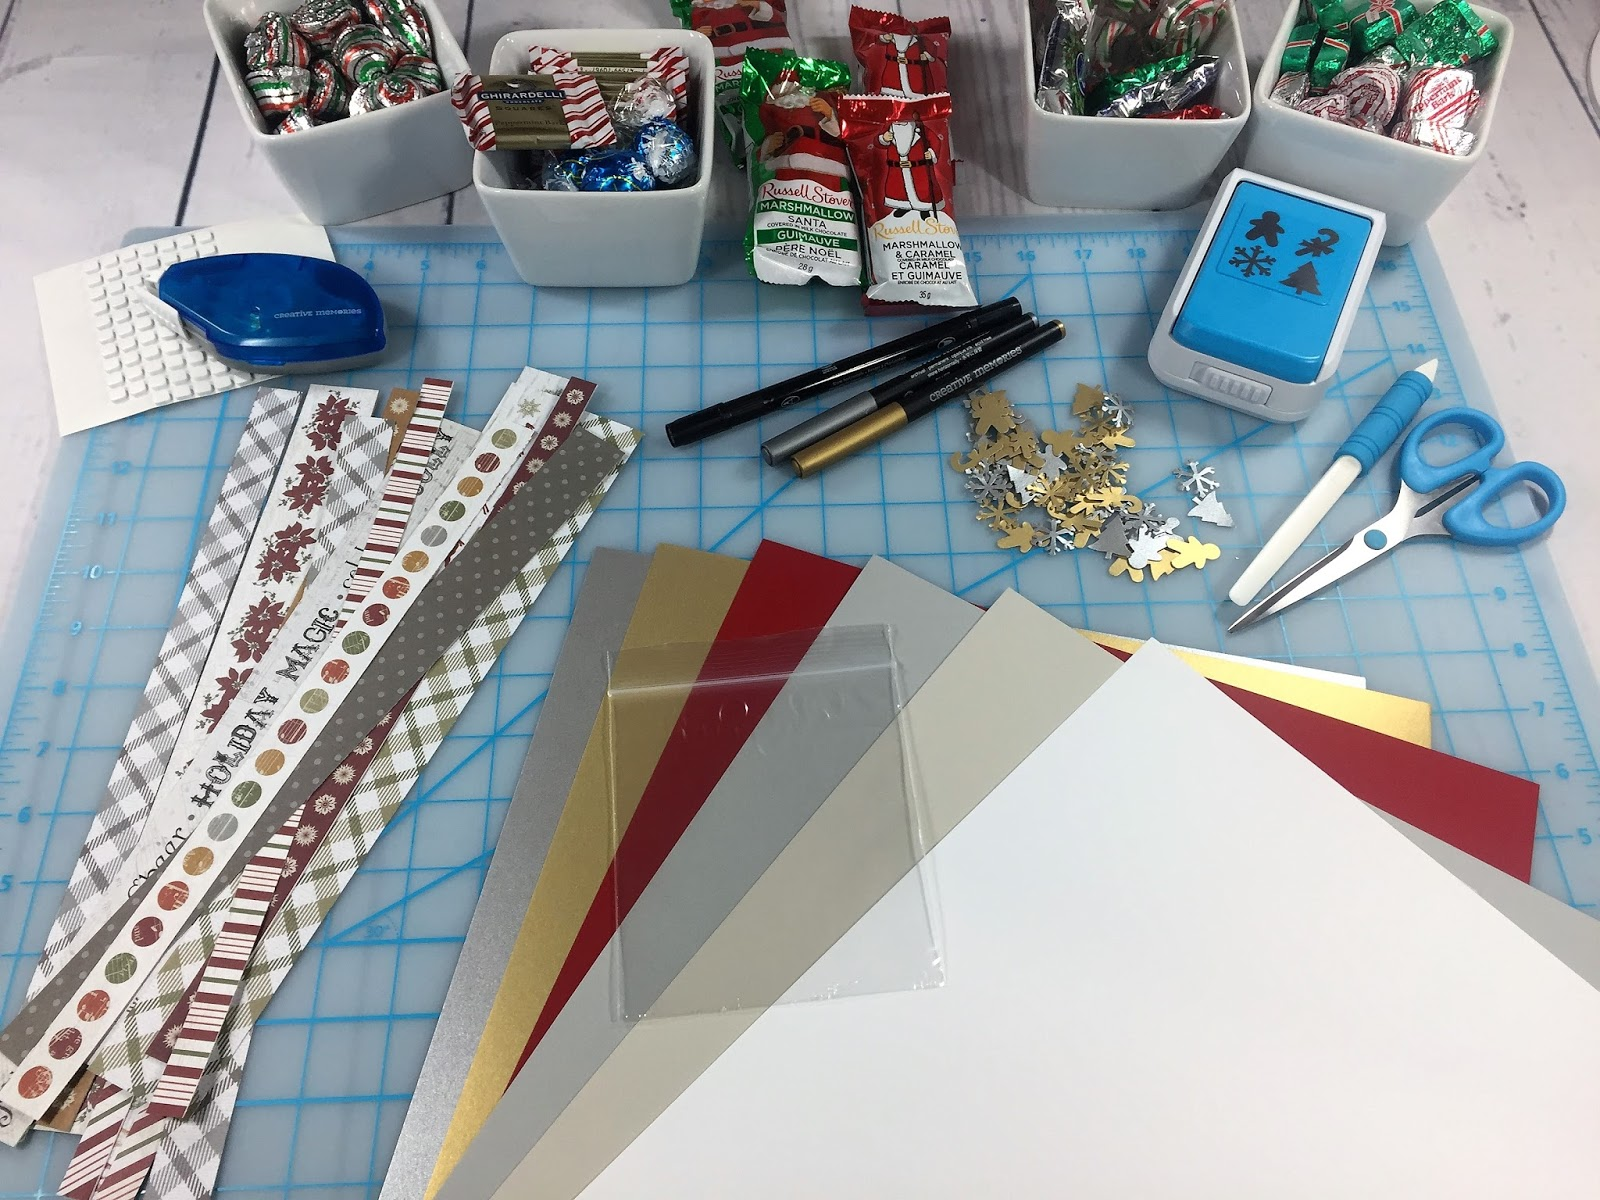 Elementary school scrapbook ideas - I Have Two Boys In Elementary School Who Both Still Enjoy Bringing Treats To Their Friends For Holidays And Special Occasions So I M Always Trying To Come